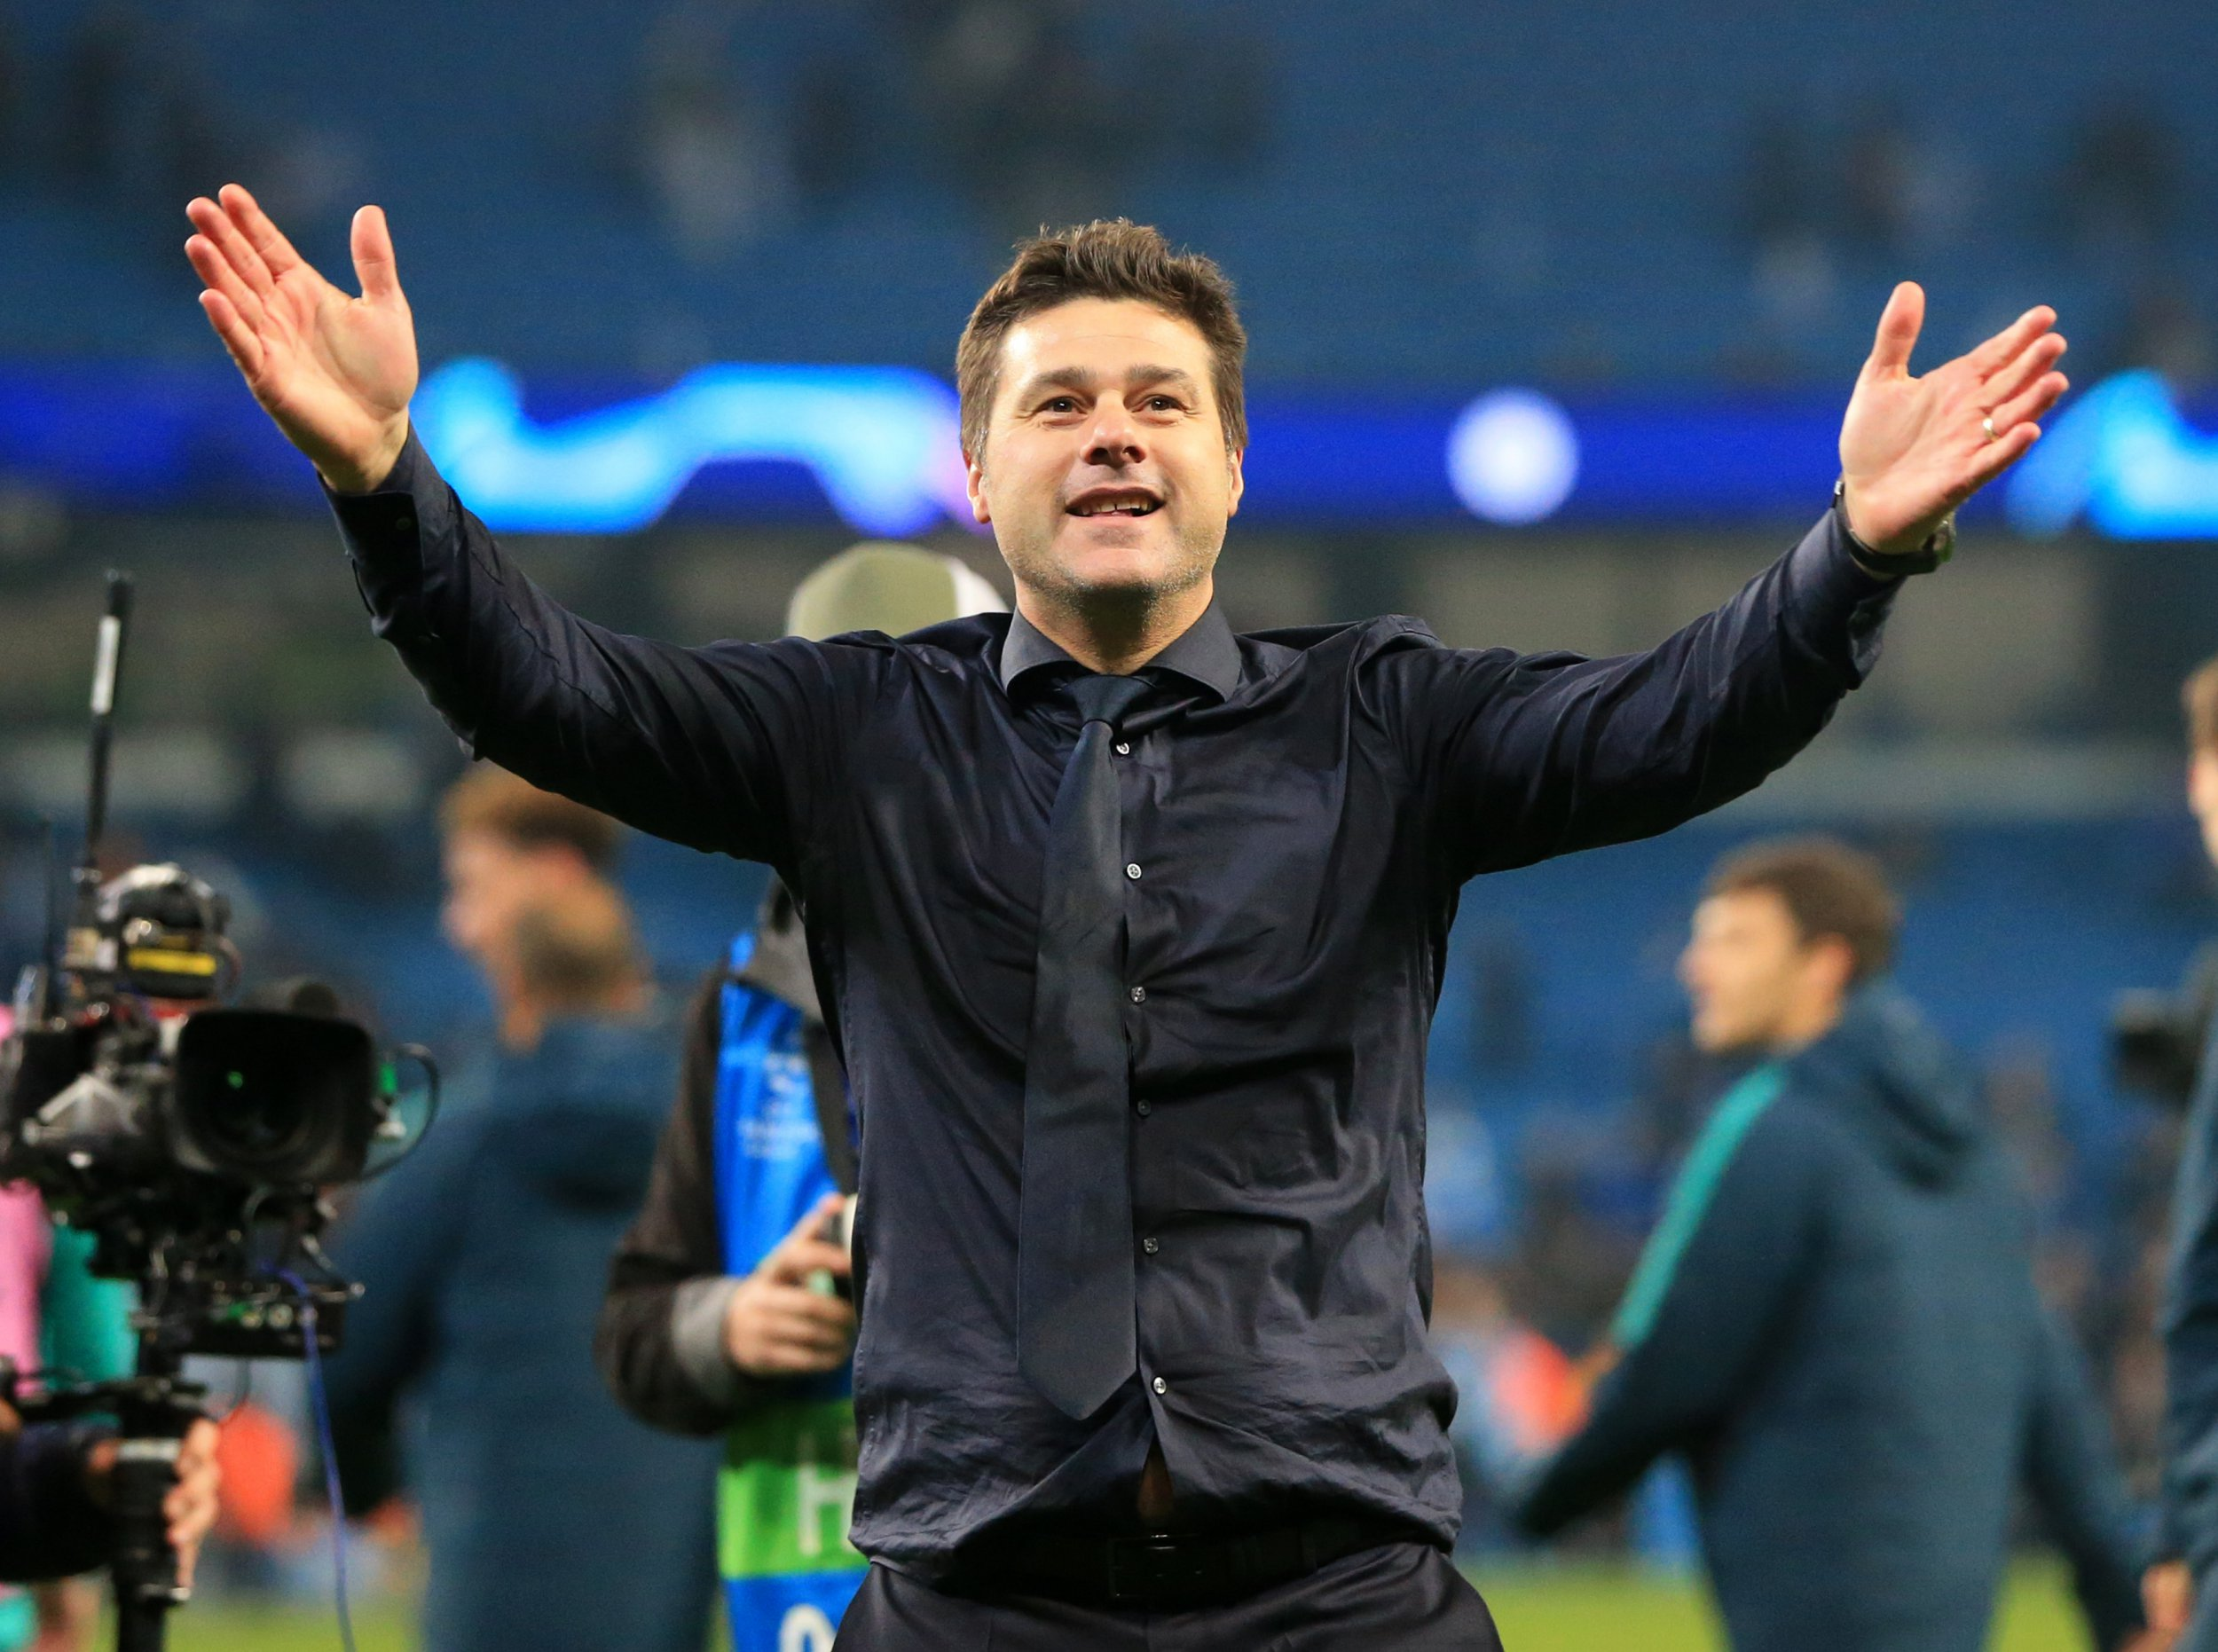 17th April 2019, Etihad Stadium, Manchester, England; UEFA Champions League football, quarter final 2nd leg, Manchester City versus Tottenham Hotspur; Tottenham Hotspur manager Mauricio Pochettino celebrates in front of the visiting fans after the final whistle (Photo by David Blunsden/Action Plus via Getty Images)